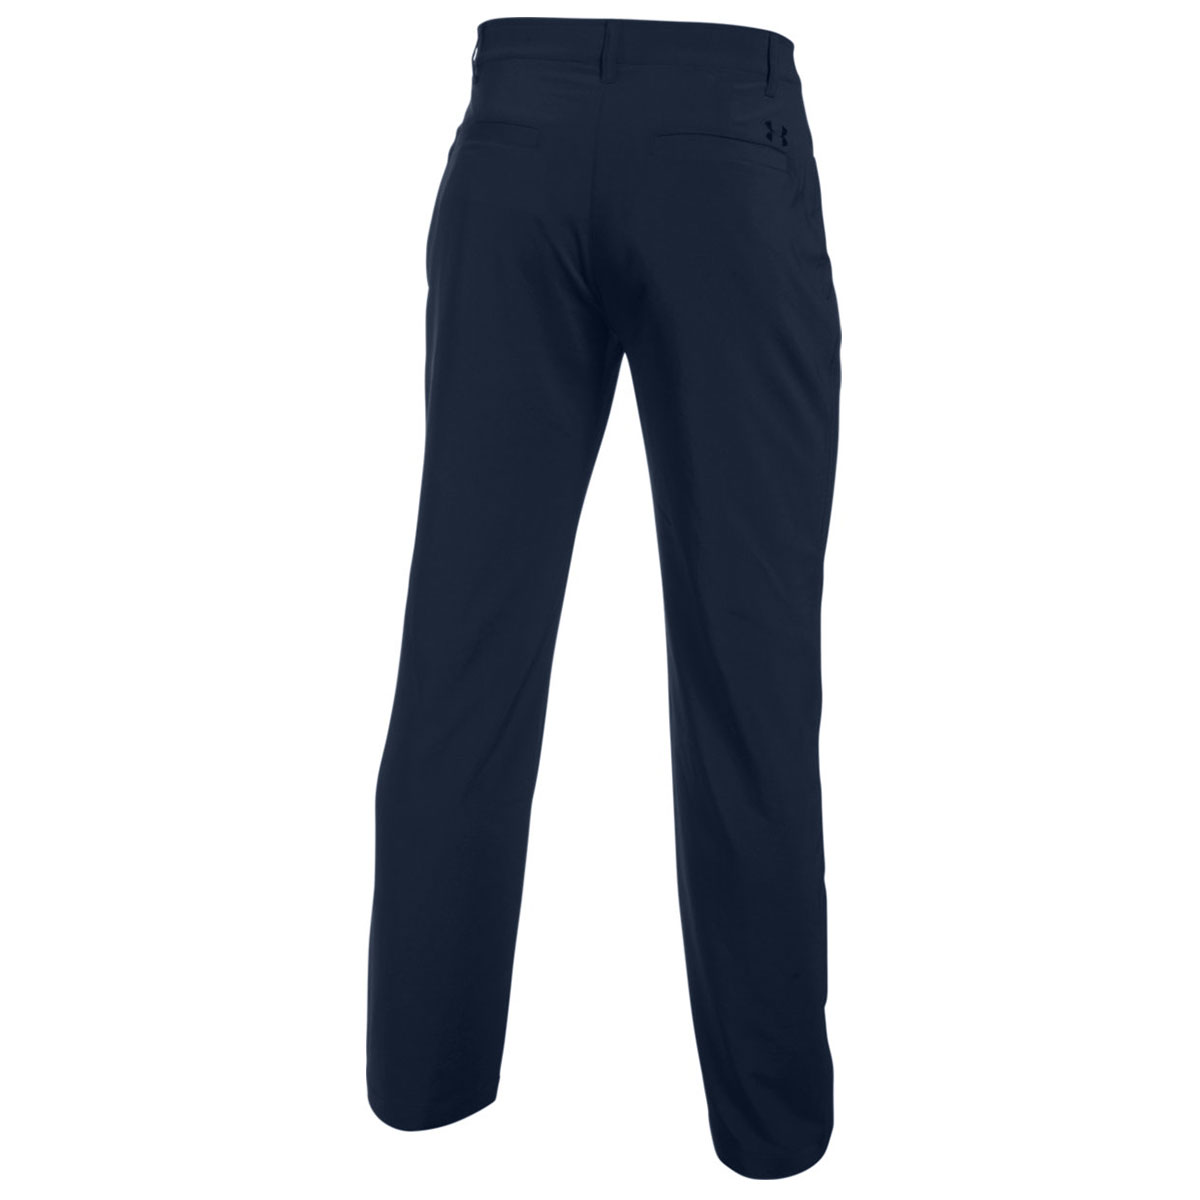 Under-Armour-Mens-Tech-Pant-Soft-Stretch-Golf-Trousers-31-OFF-RRP thumbnail 5